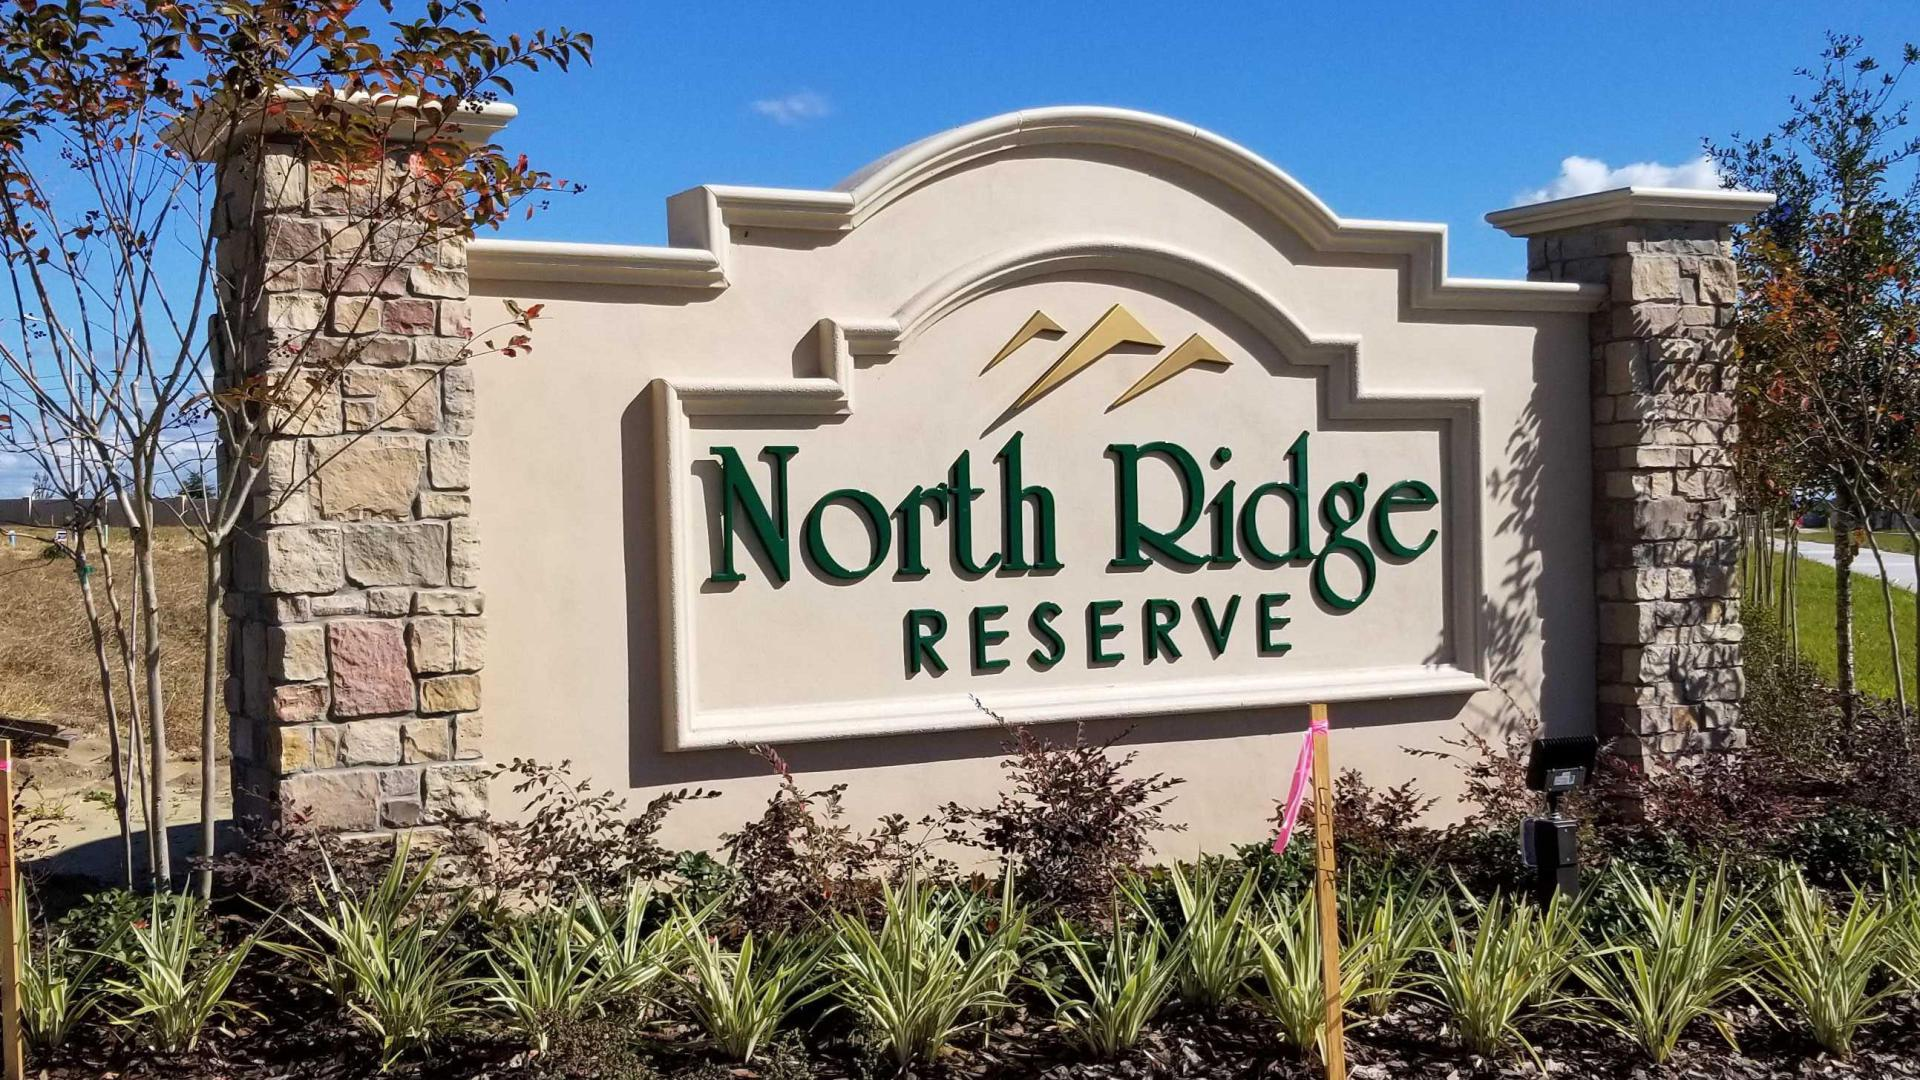 Northridge Reserve,33844